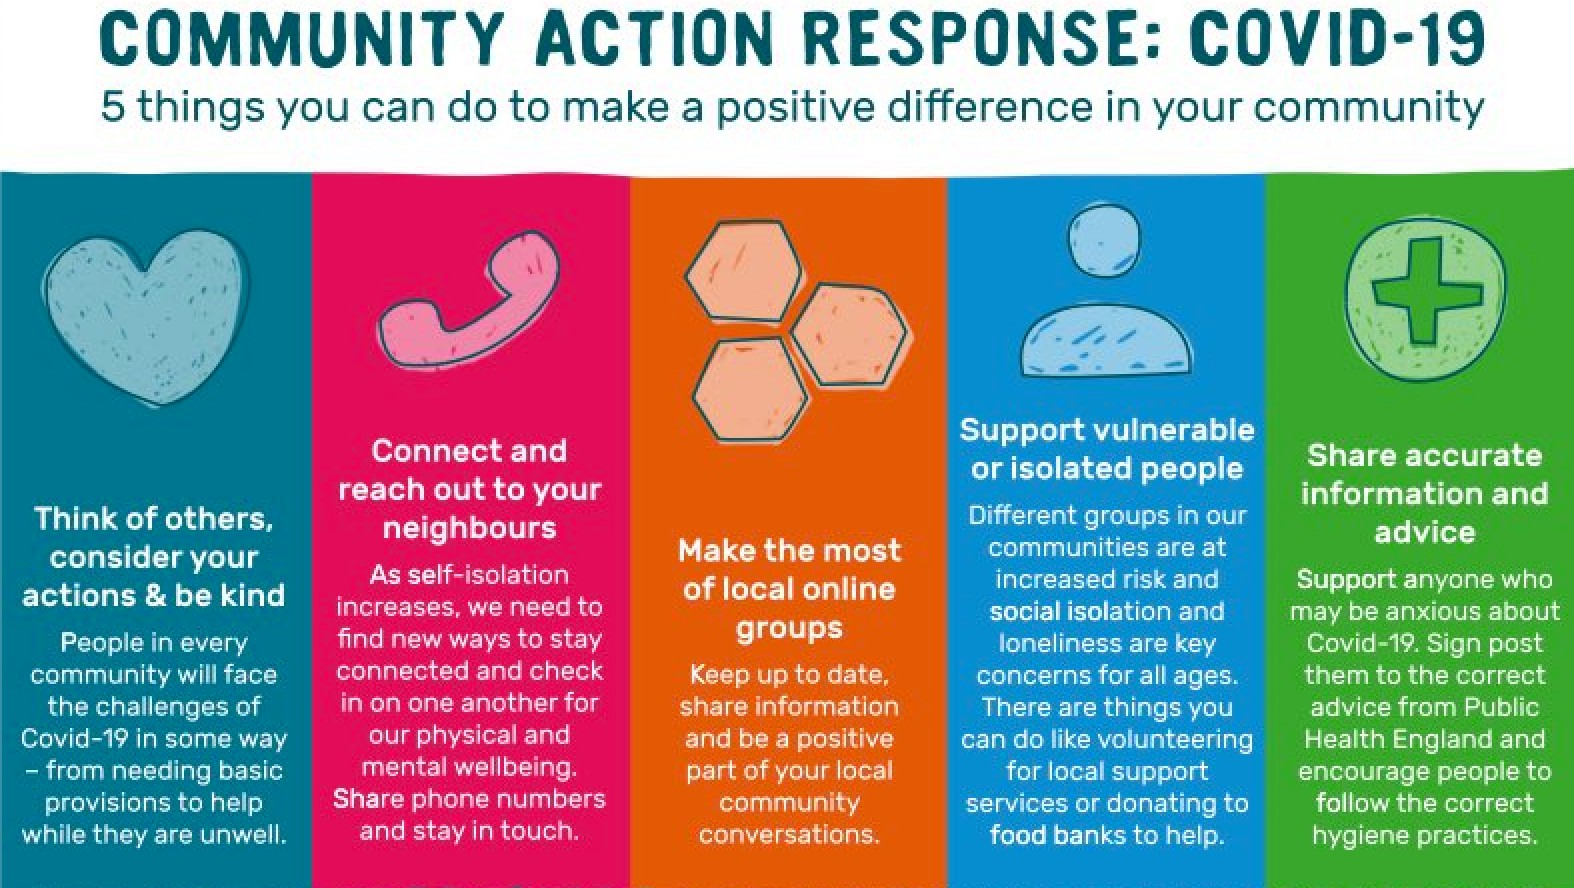 Community Action Response: COVID-19